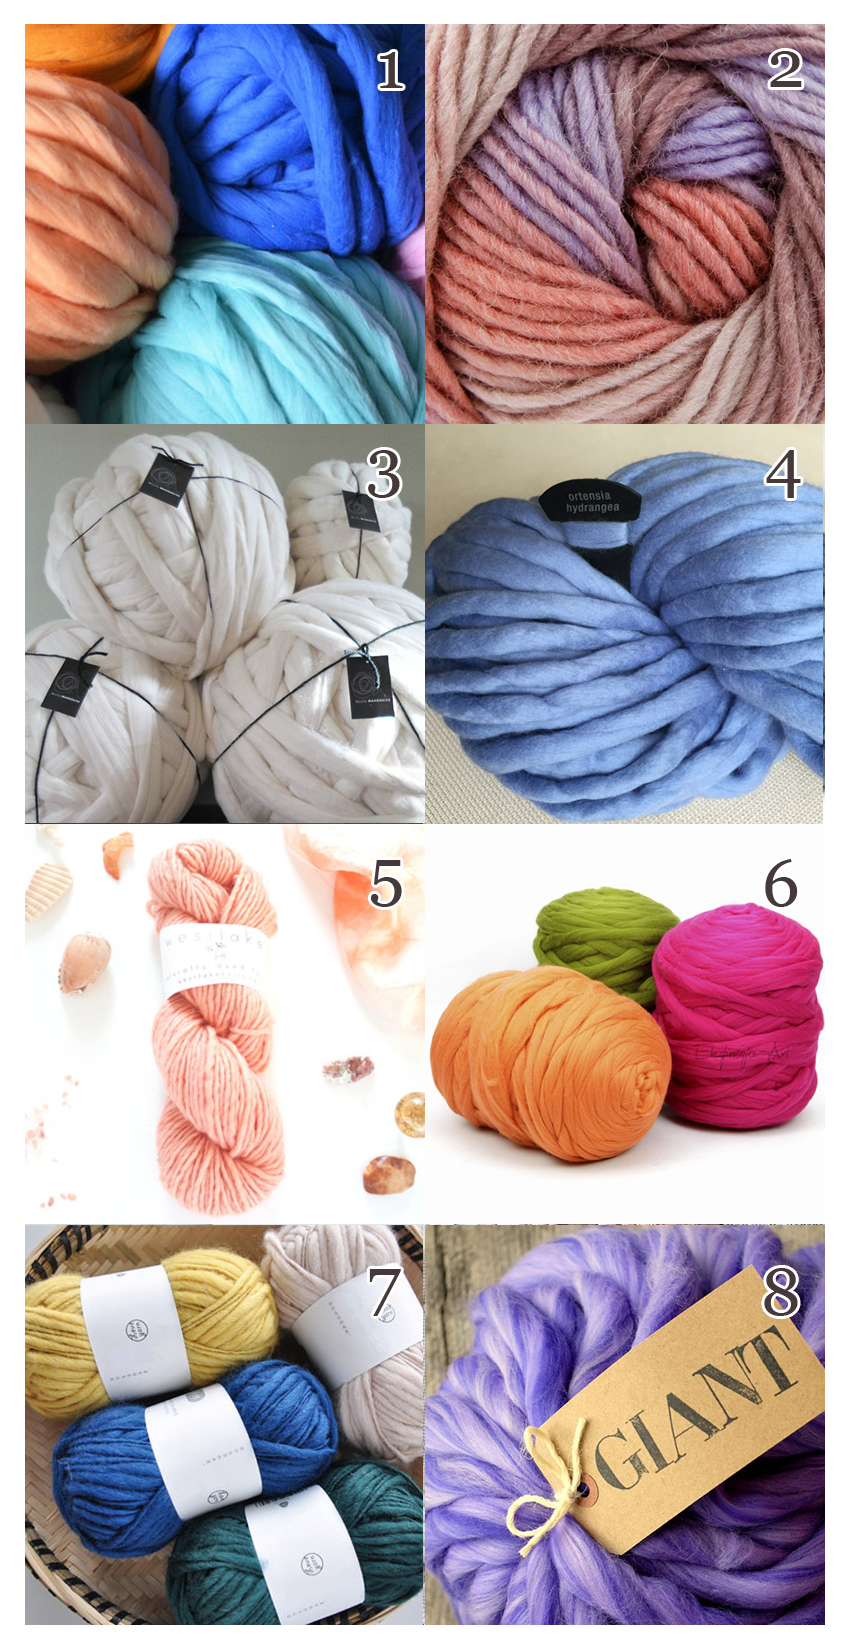 Here's a great supply list if you want to knit your own blanket - some affordable wool and knitting yarn